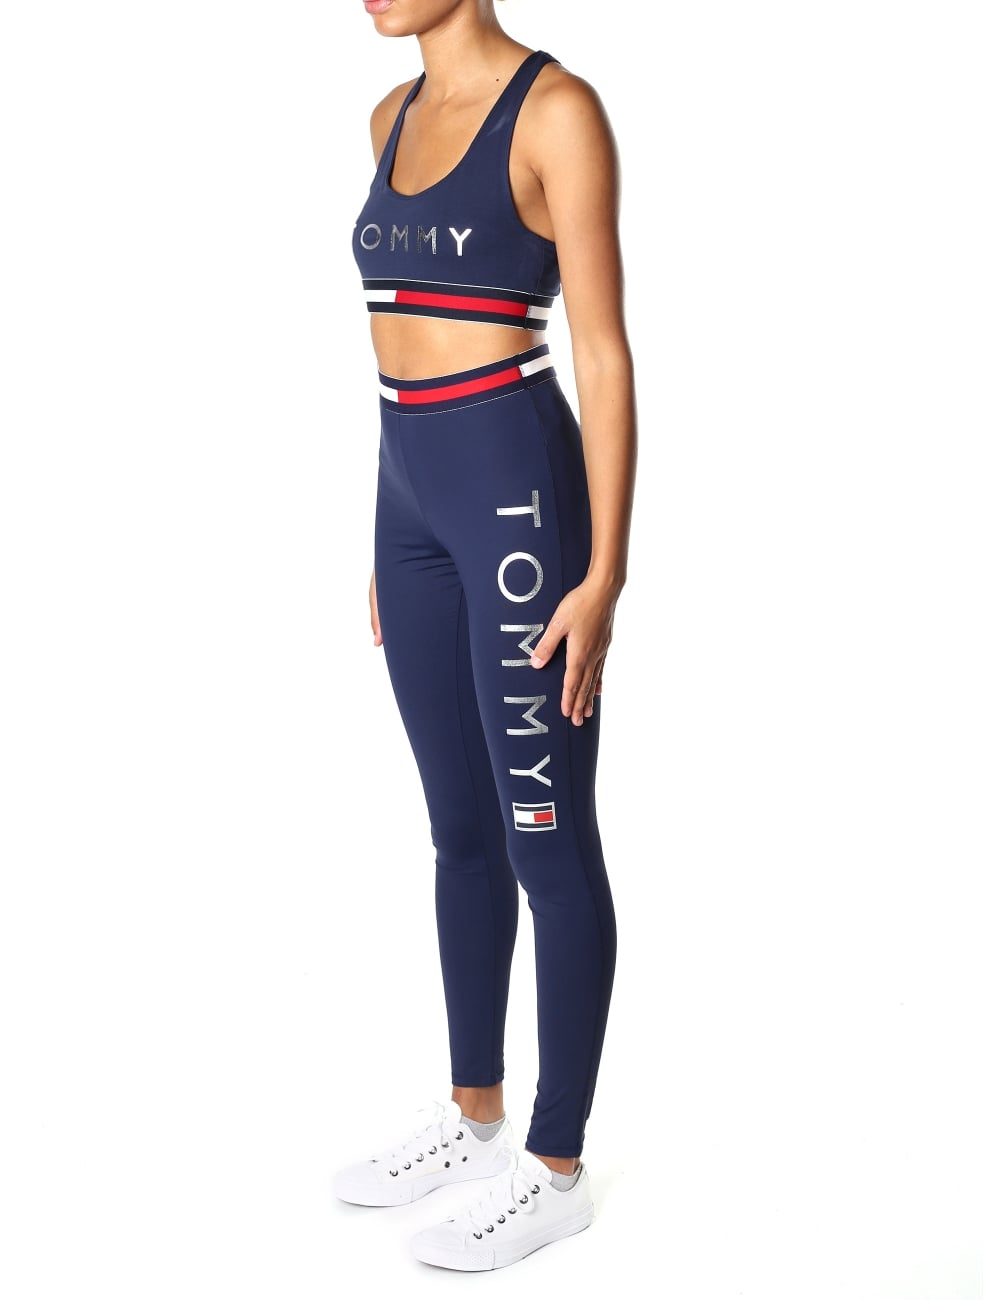 8e26bf6f845b1 Tommy Hilfiger Women's Athletic Crop Top